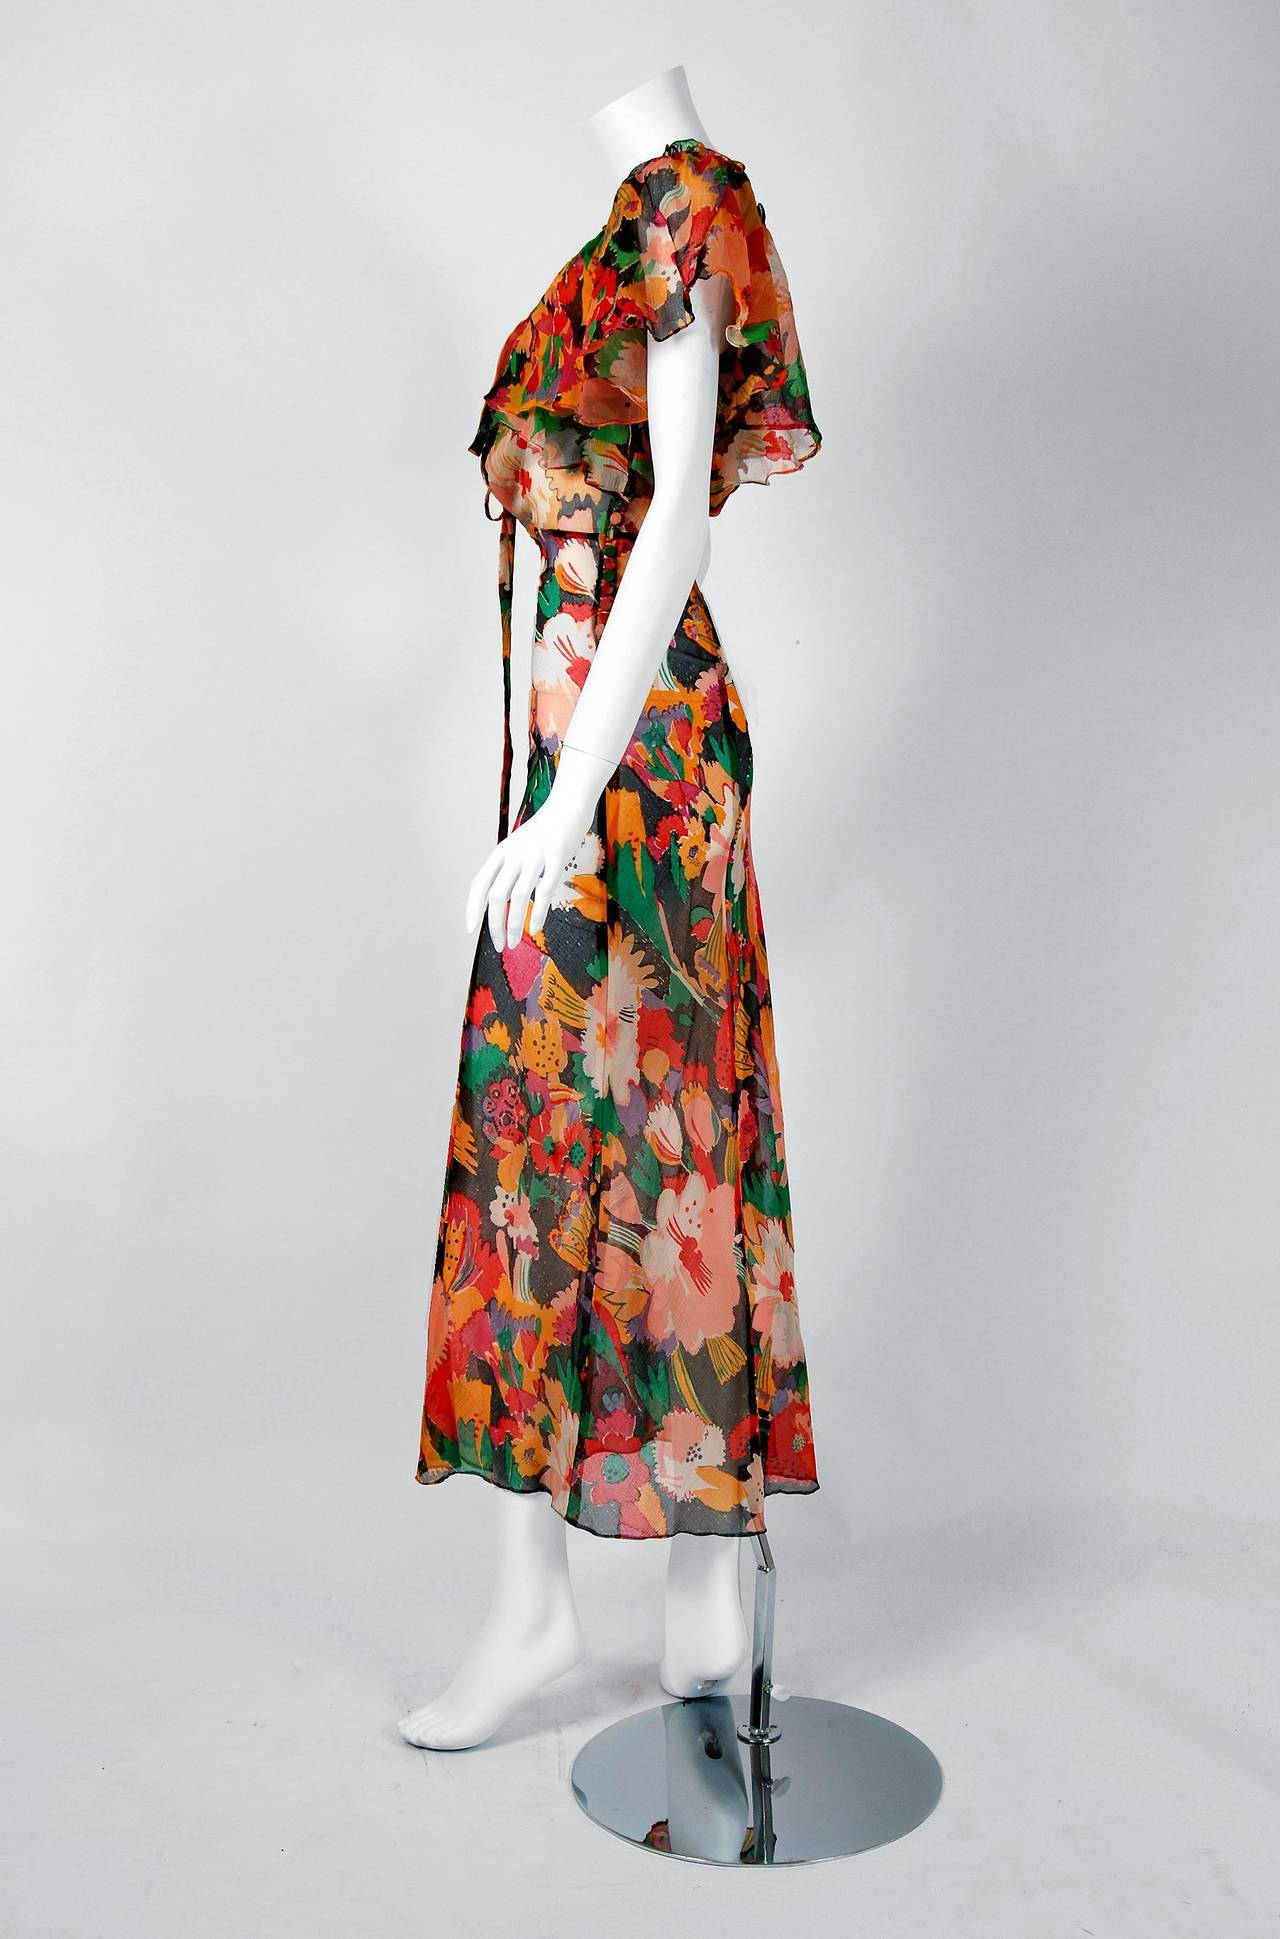 Women S 1973 Ossie Clark Doented Colorful Fl Celia Birtwell Print Chiffon Dress For